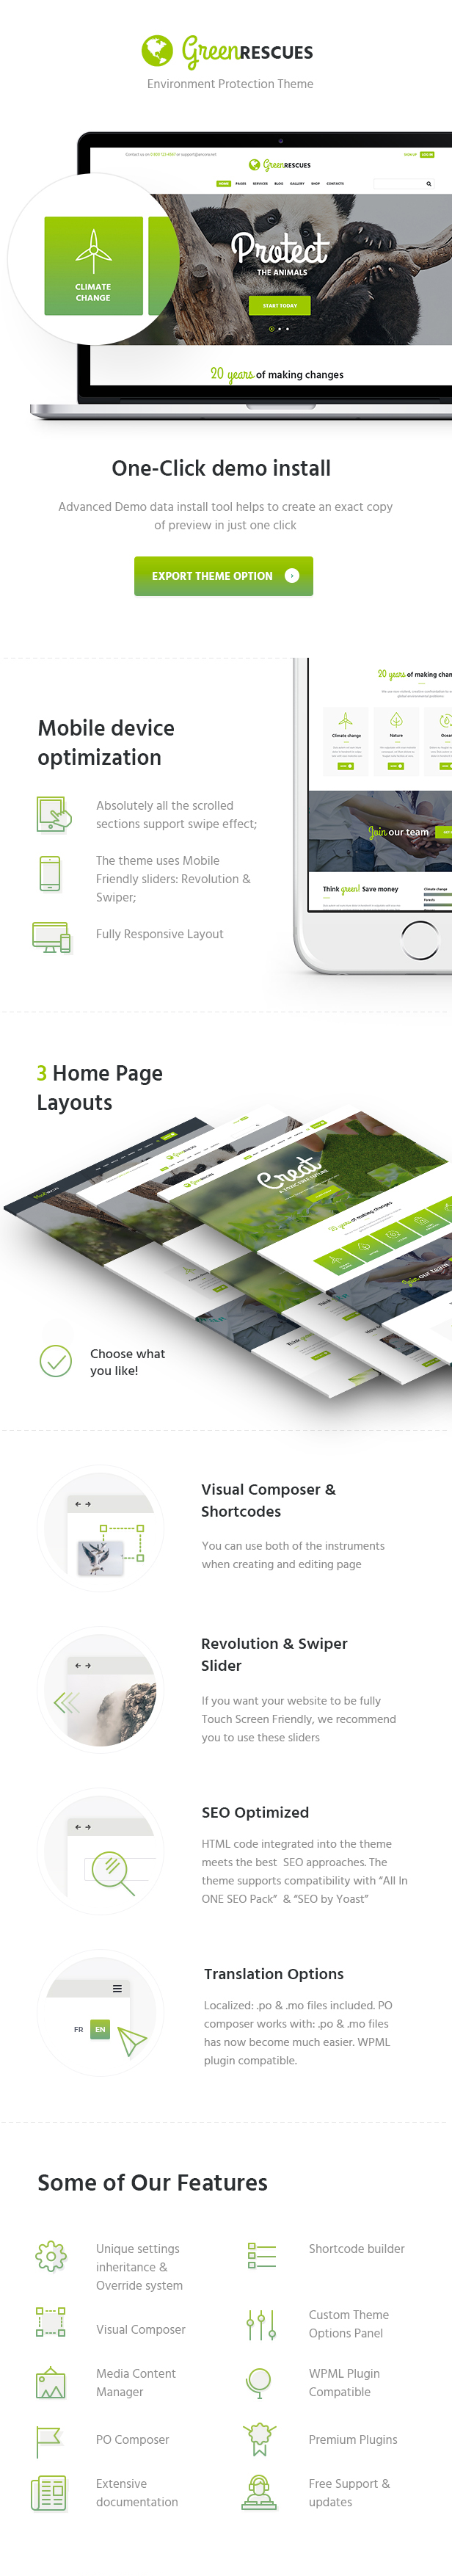 Green Rescues - Environment Protection WordPress Theme - 2